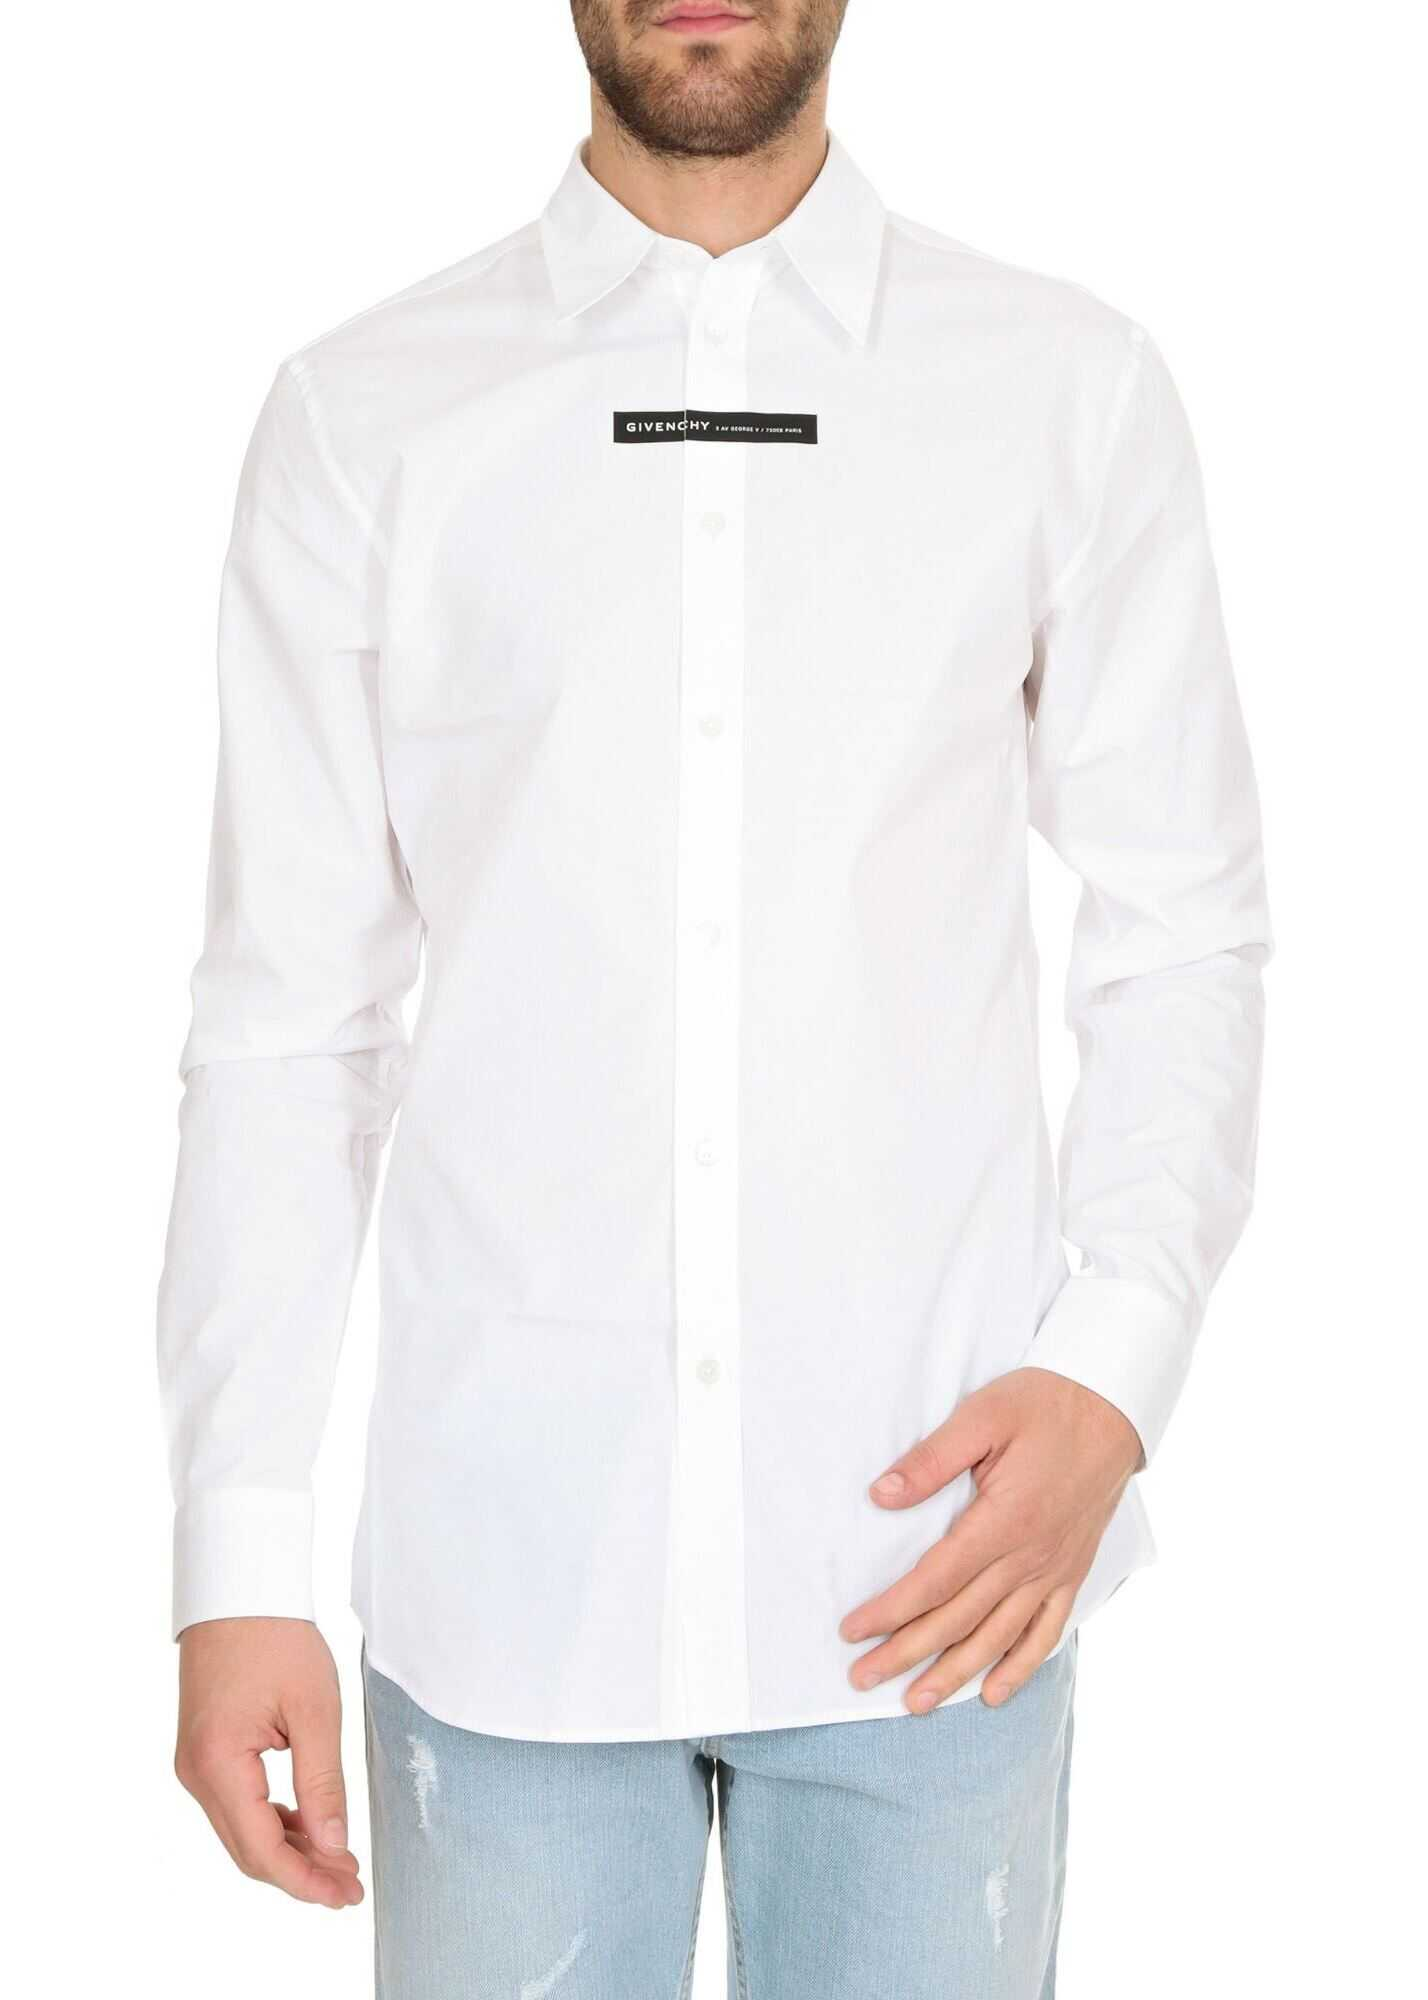 Givenchy Givenchy Adress Print Shirt In White White imagine